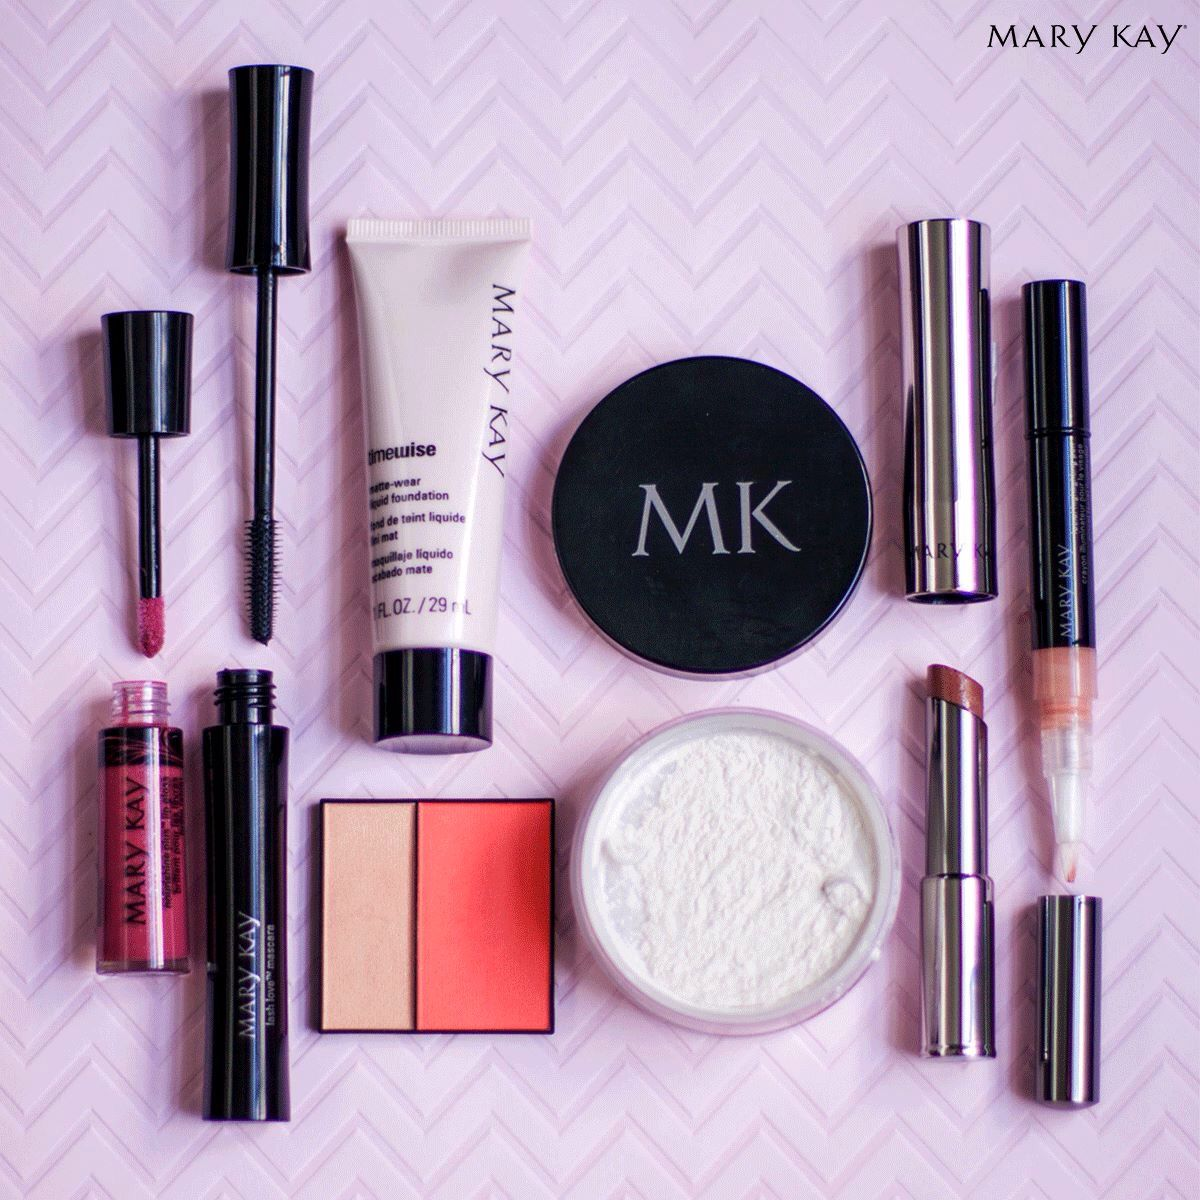 Accentuate your favorite features? Love your eyes? Add an extra coat of Las Love Mascara! Want to show off your lips? A swipe of True Dimensions Sienne Brûlée topped with NouriShine Plus Lip Gloss in Sparkle Berry with dazzle! www.marykay.com/brookeramsey Find Link in Bio #BrookesBeauties #MaryKay #Pick2Tuesday #Favorites #SaleTuesday #DiscoverWhatYouLove